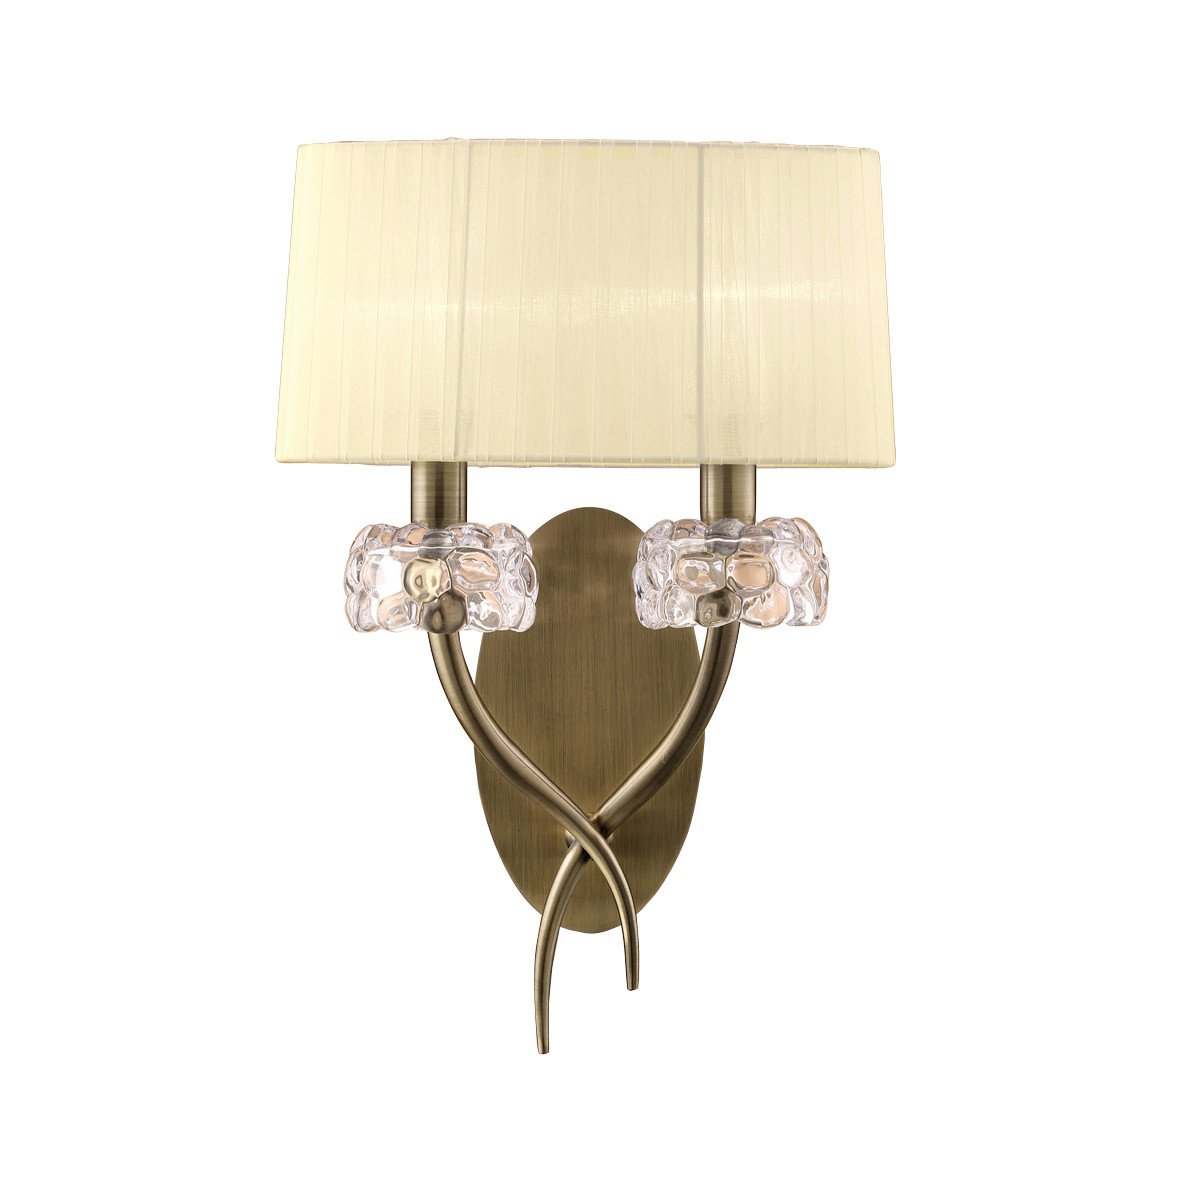 Loewe Wall Lamp Switched 2 Light E14, Antique Brass With Cream Shade